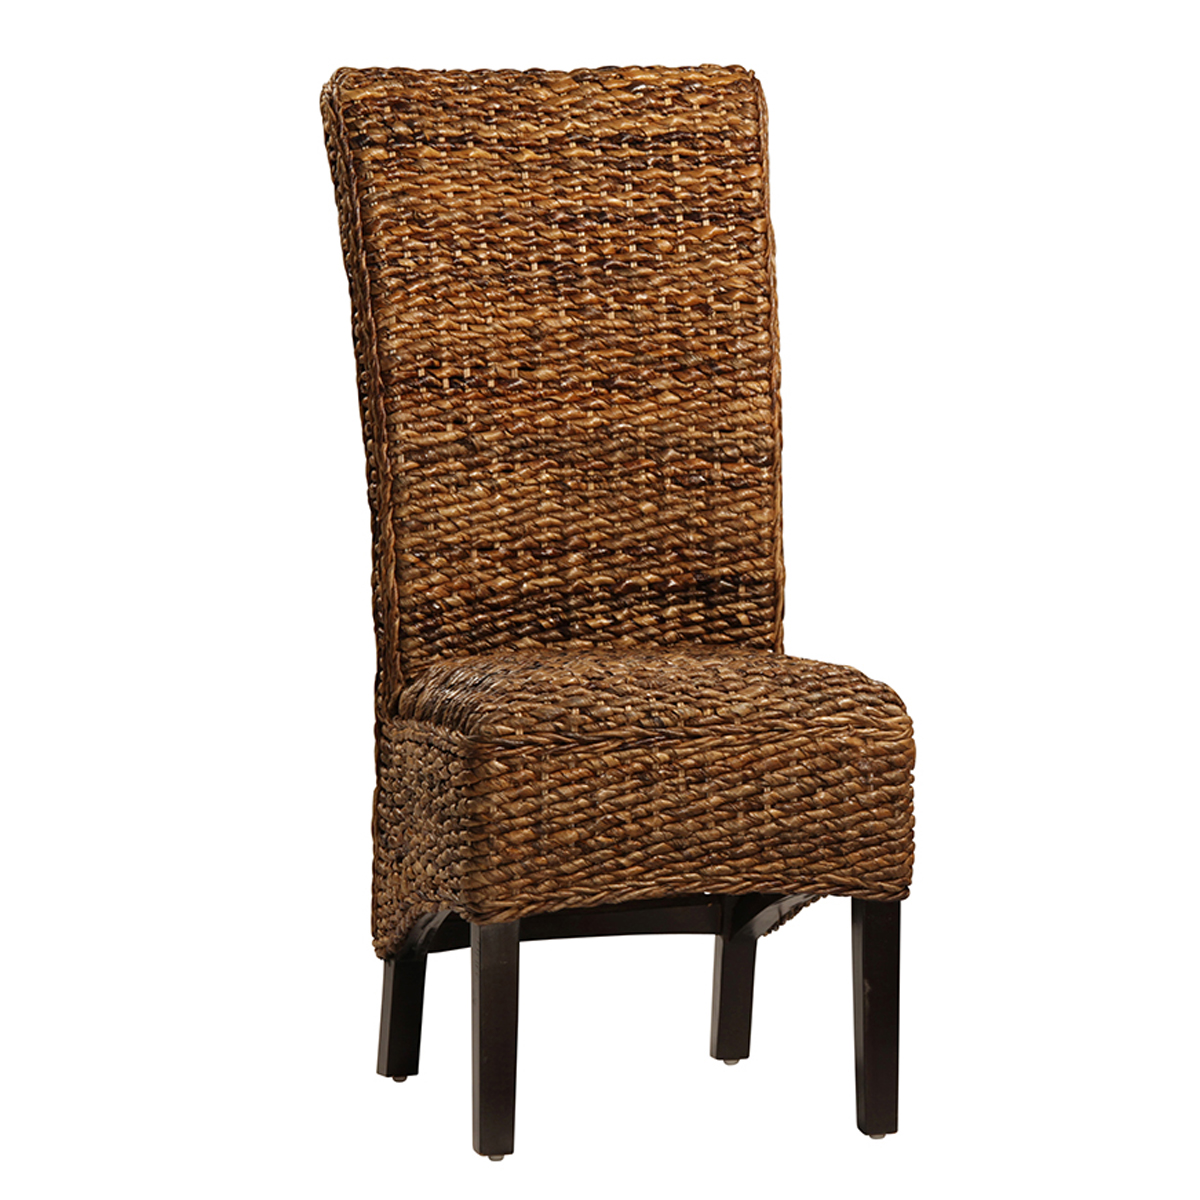 Woven Banana Leaf Dining Chair Furniture Design Mix Gallery